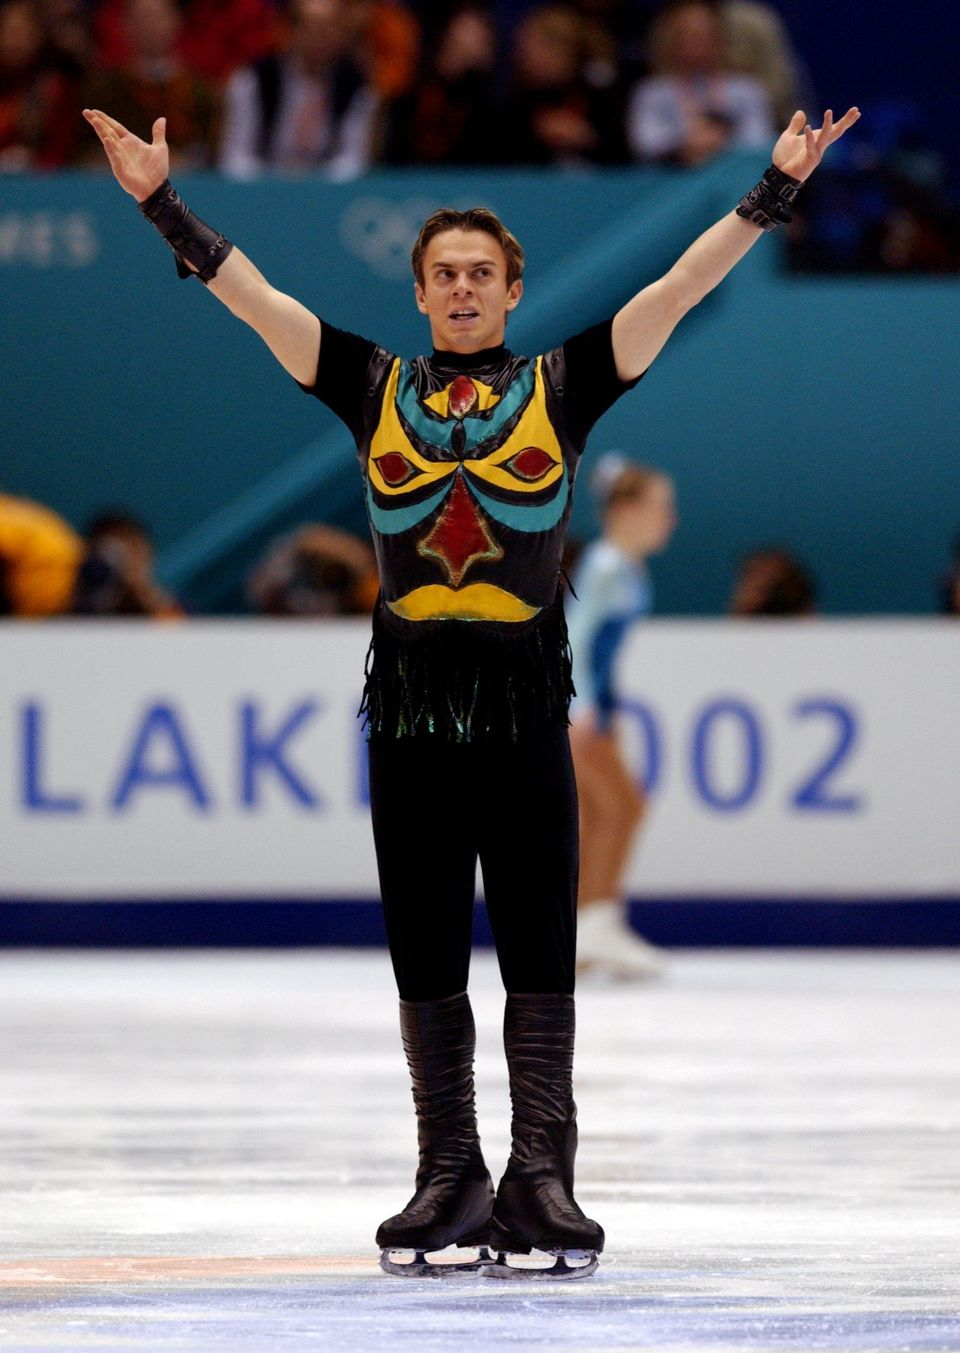 The Epic Evolution Of Men S Figure Skating Costumes Through The Years Huffpost Life